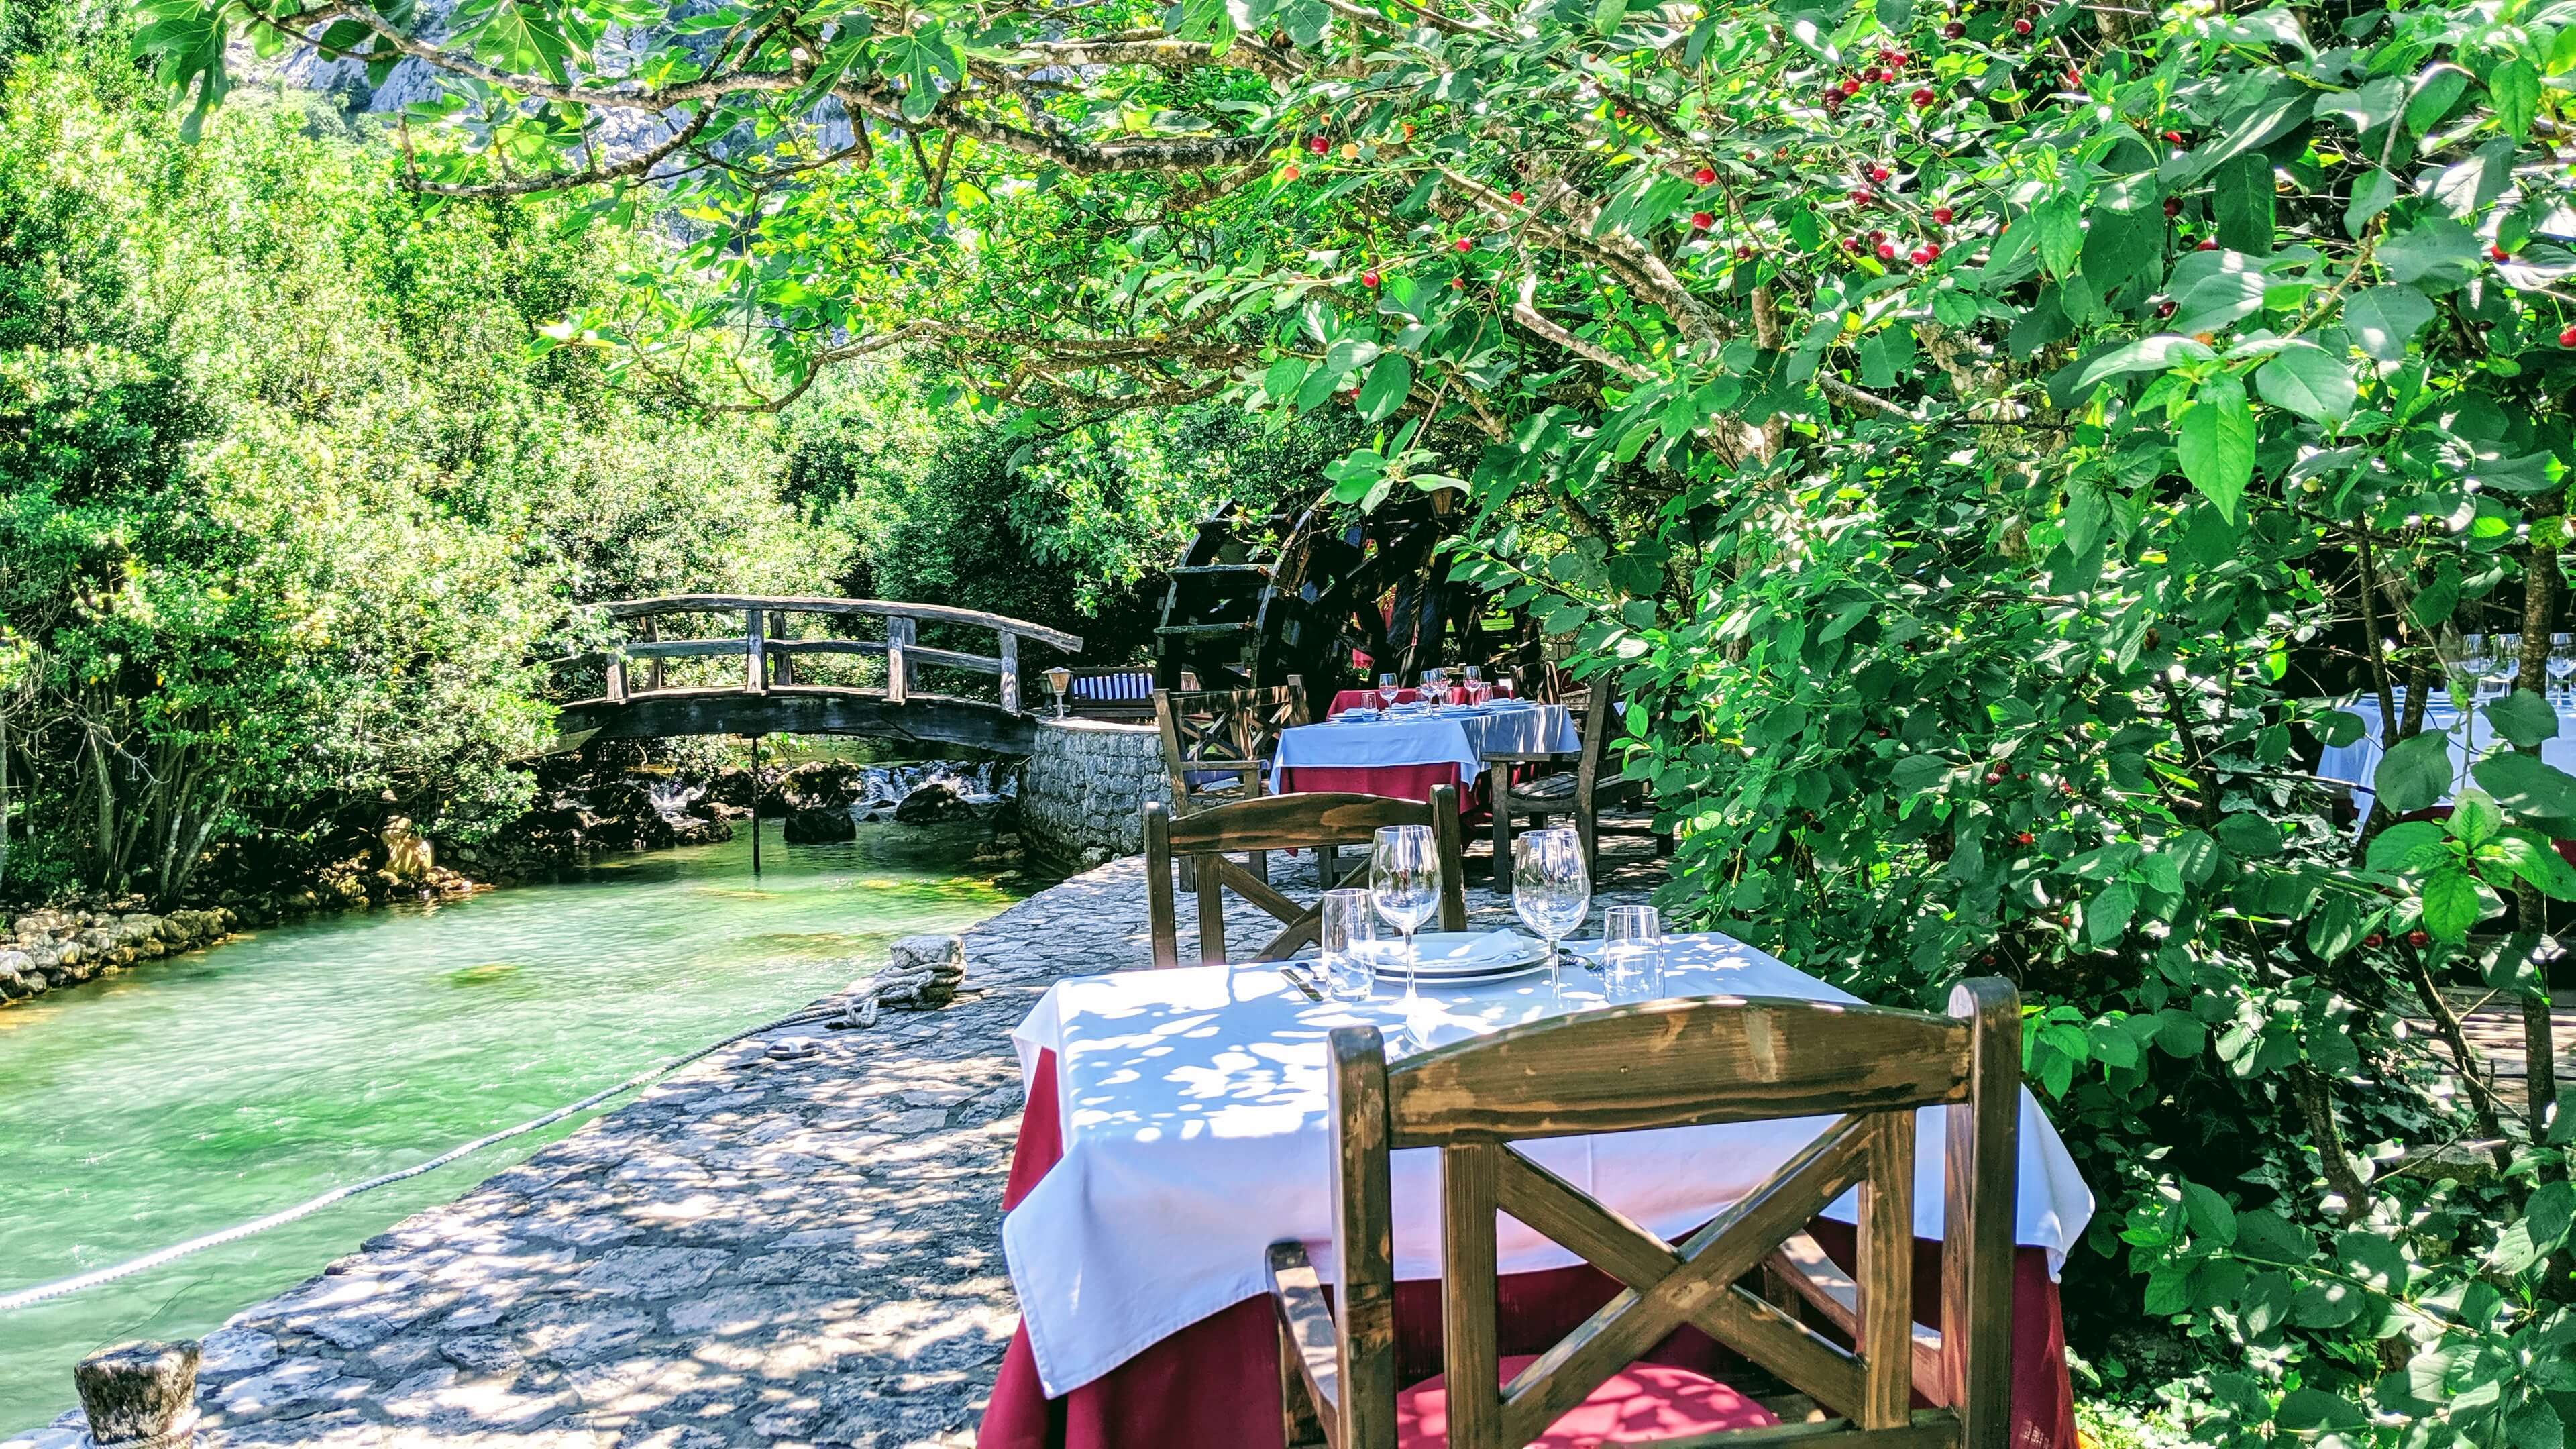 Things to see and do in Kotor - visit Stari Milni Restaurant  for the view and the old doc